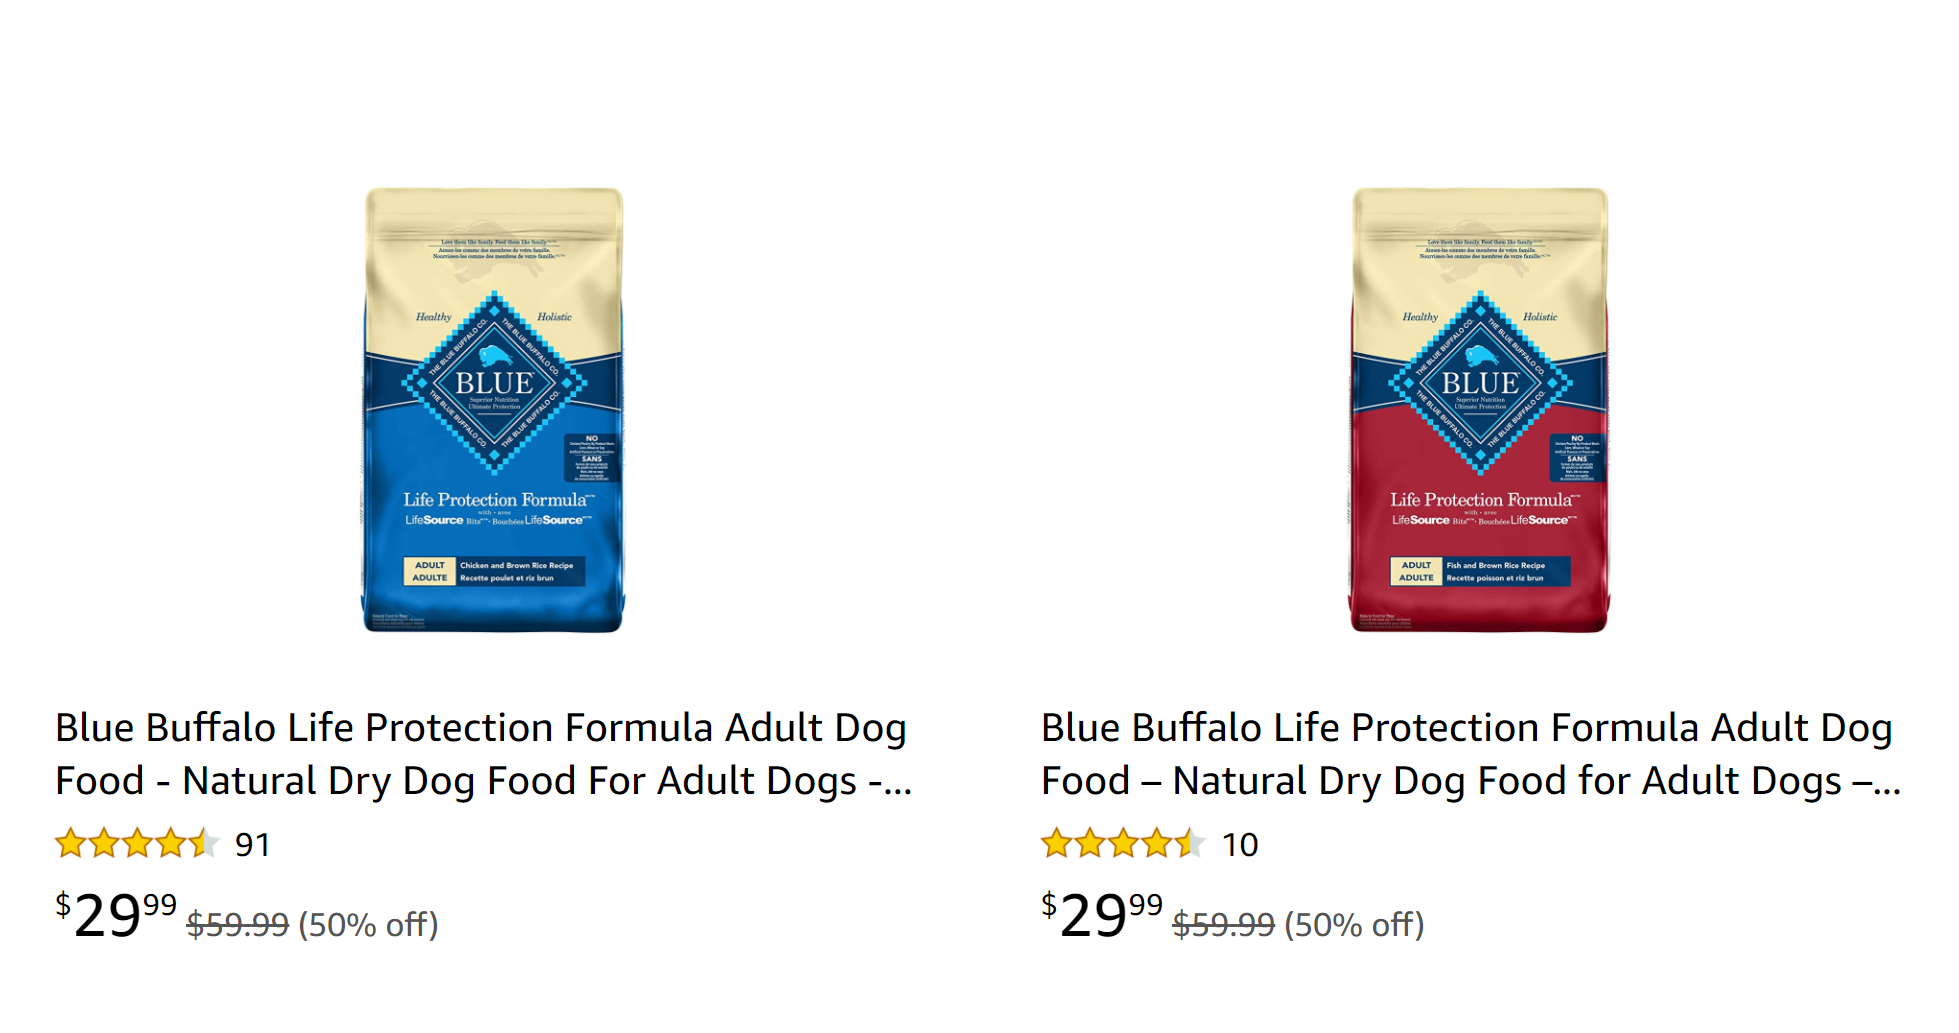 blue-buffalo-pet-food-50-off-nutritionally-balanced-high-quality-protein-2021-1-17